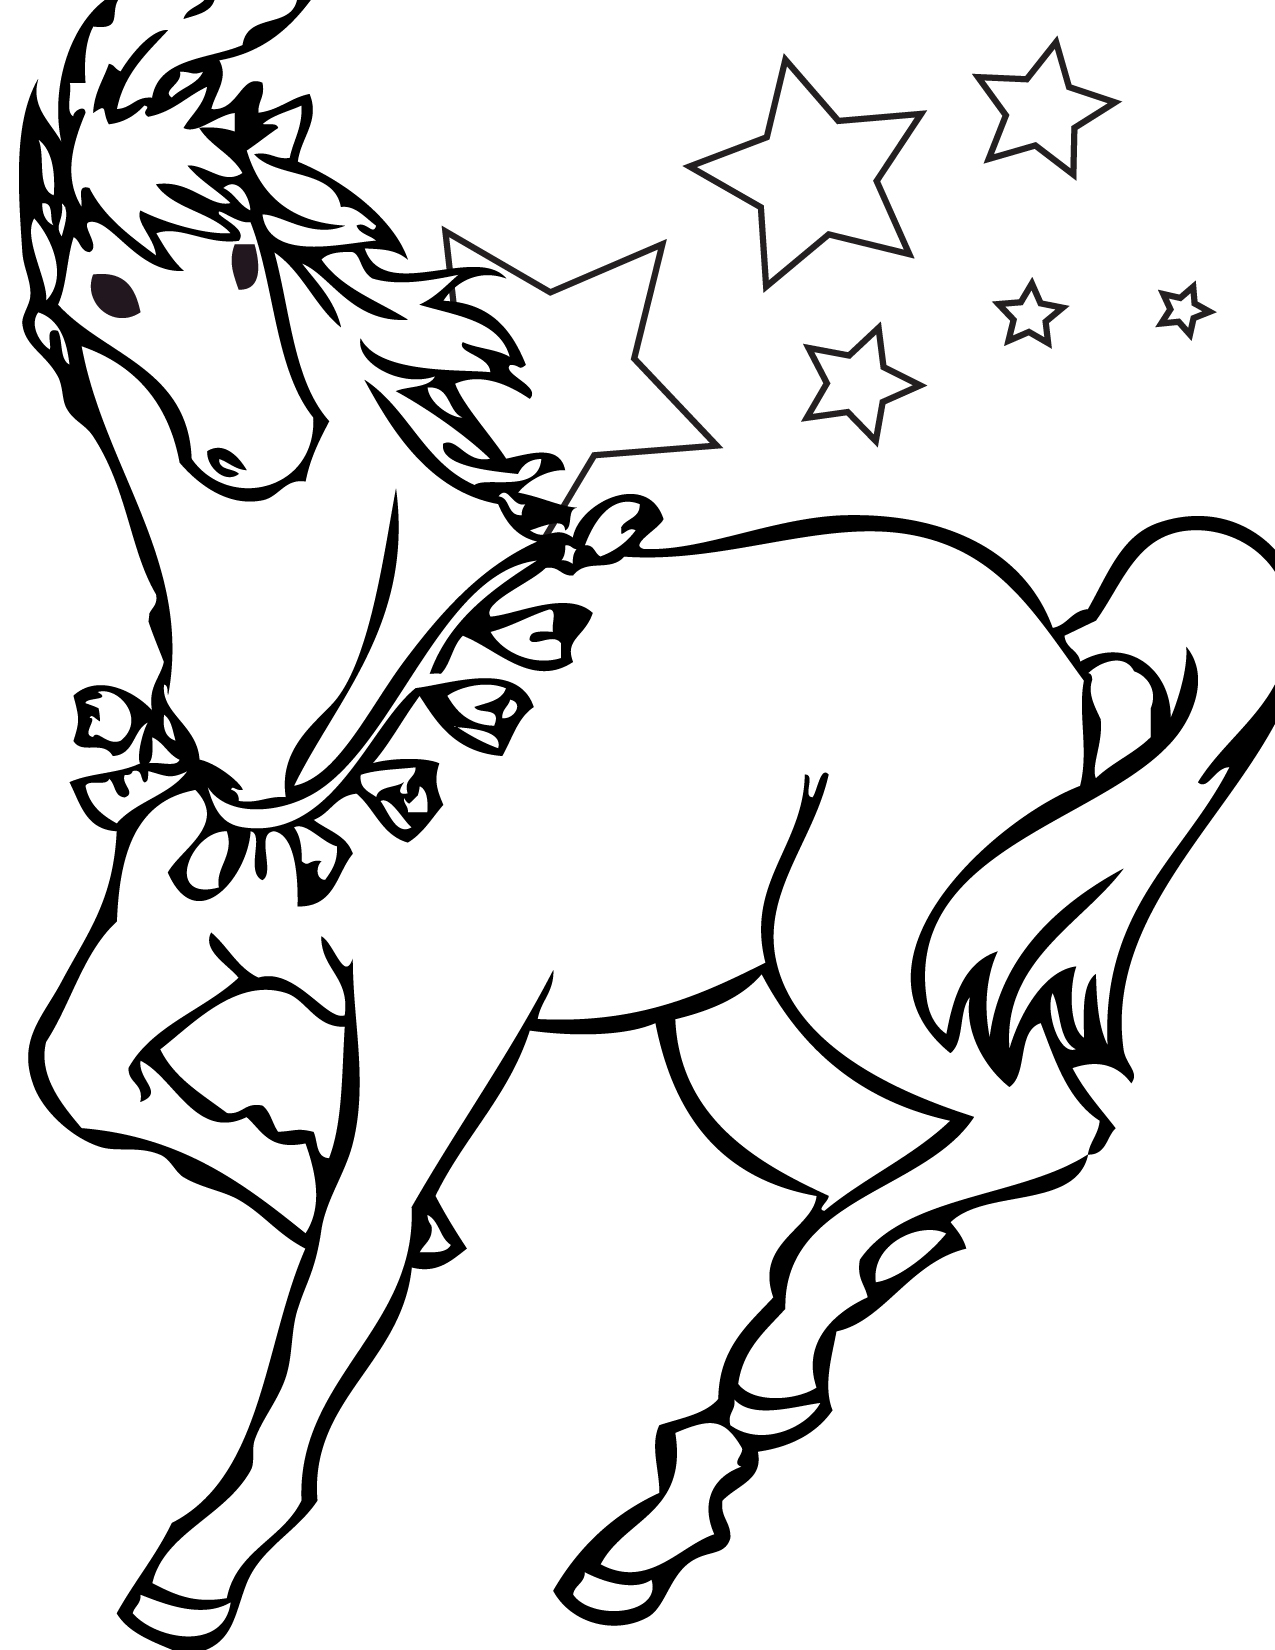 horse colouring picture fun horse coloring pages for your kids printable picture horse colouring